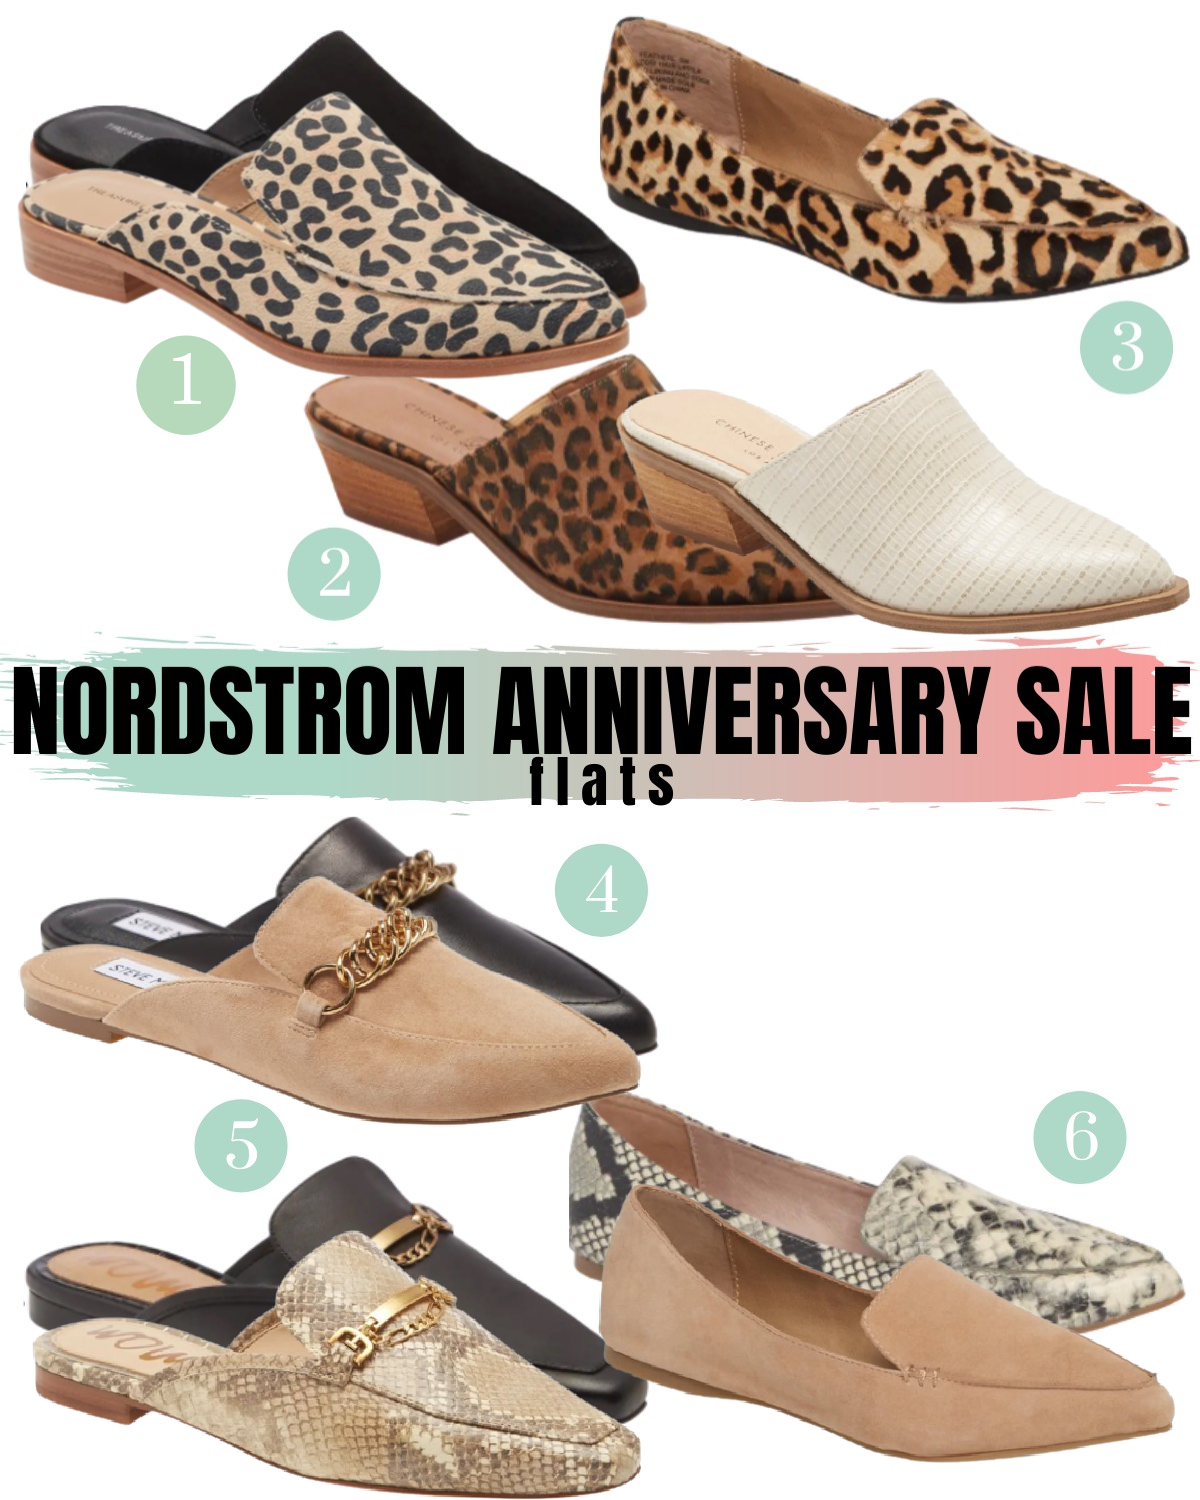 Nordstrom Anniversary Sale Flats and Mules